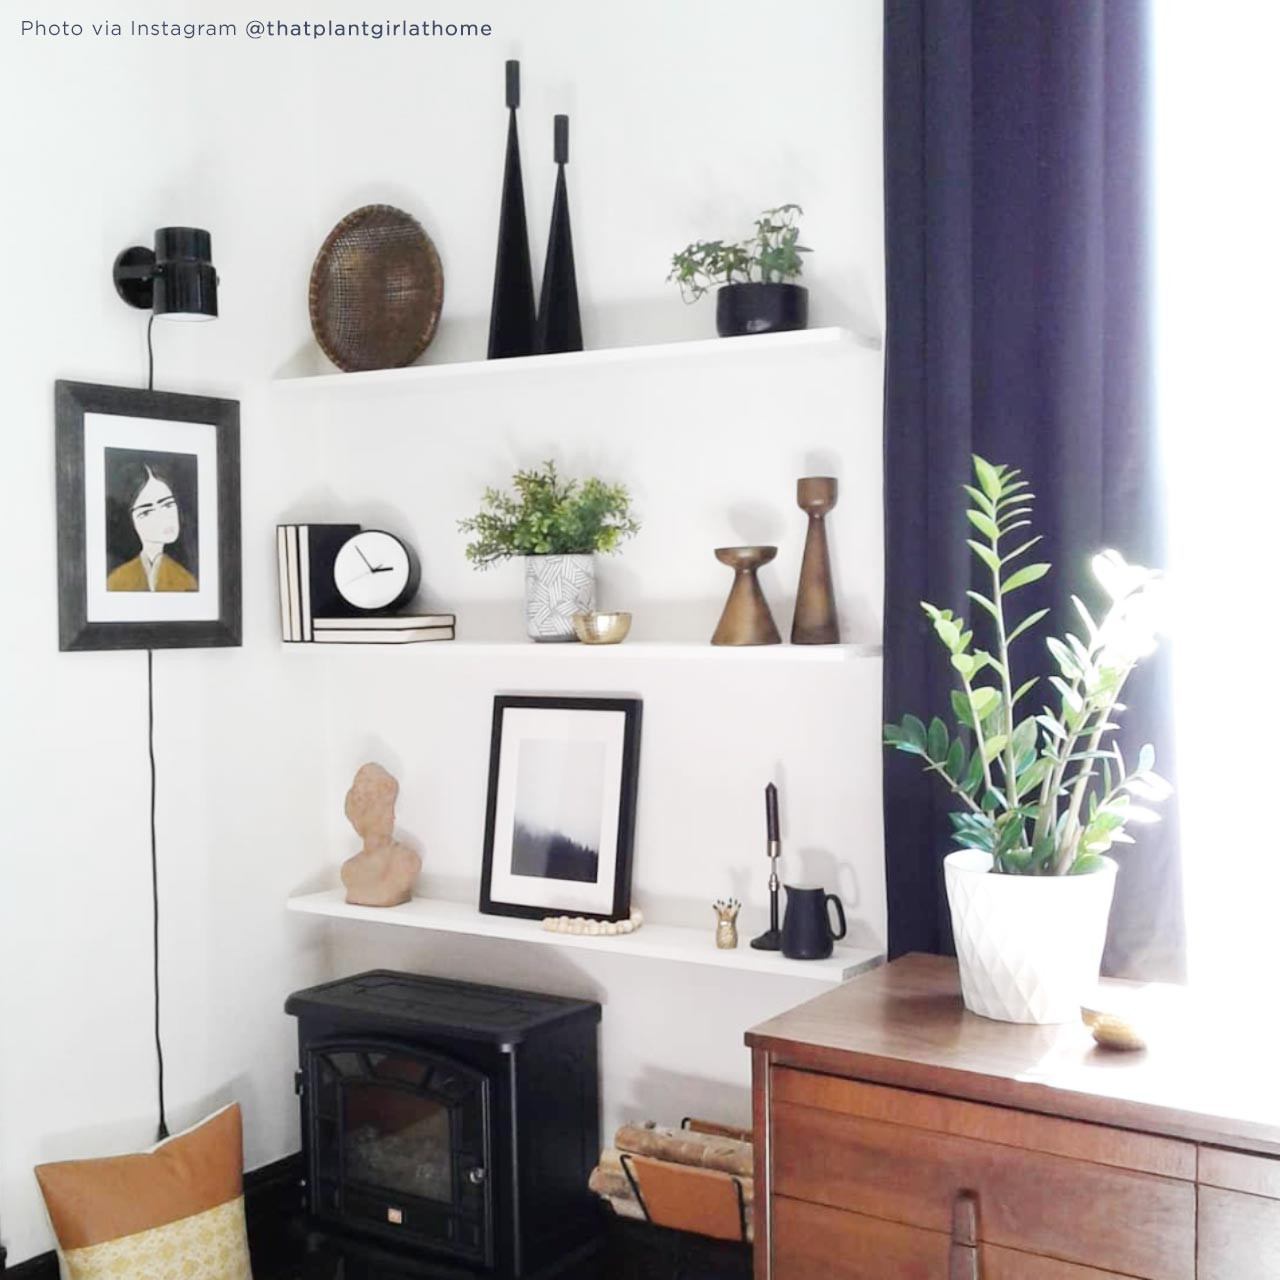 'Forest Mist I' Photography Poster from The Printed Home (Printable) Photo Credit: @thatplantgirlathome via Instagram